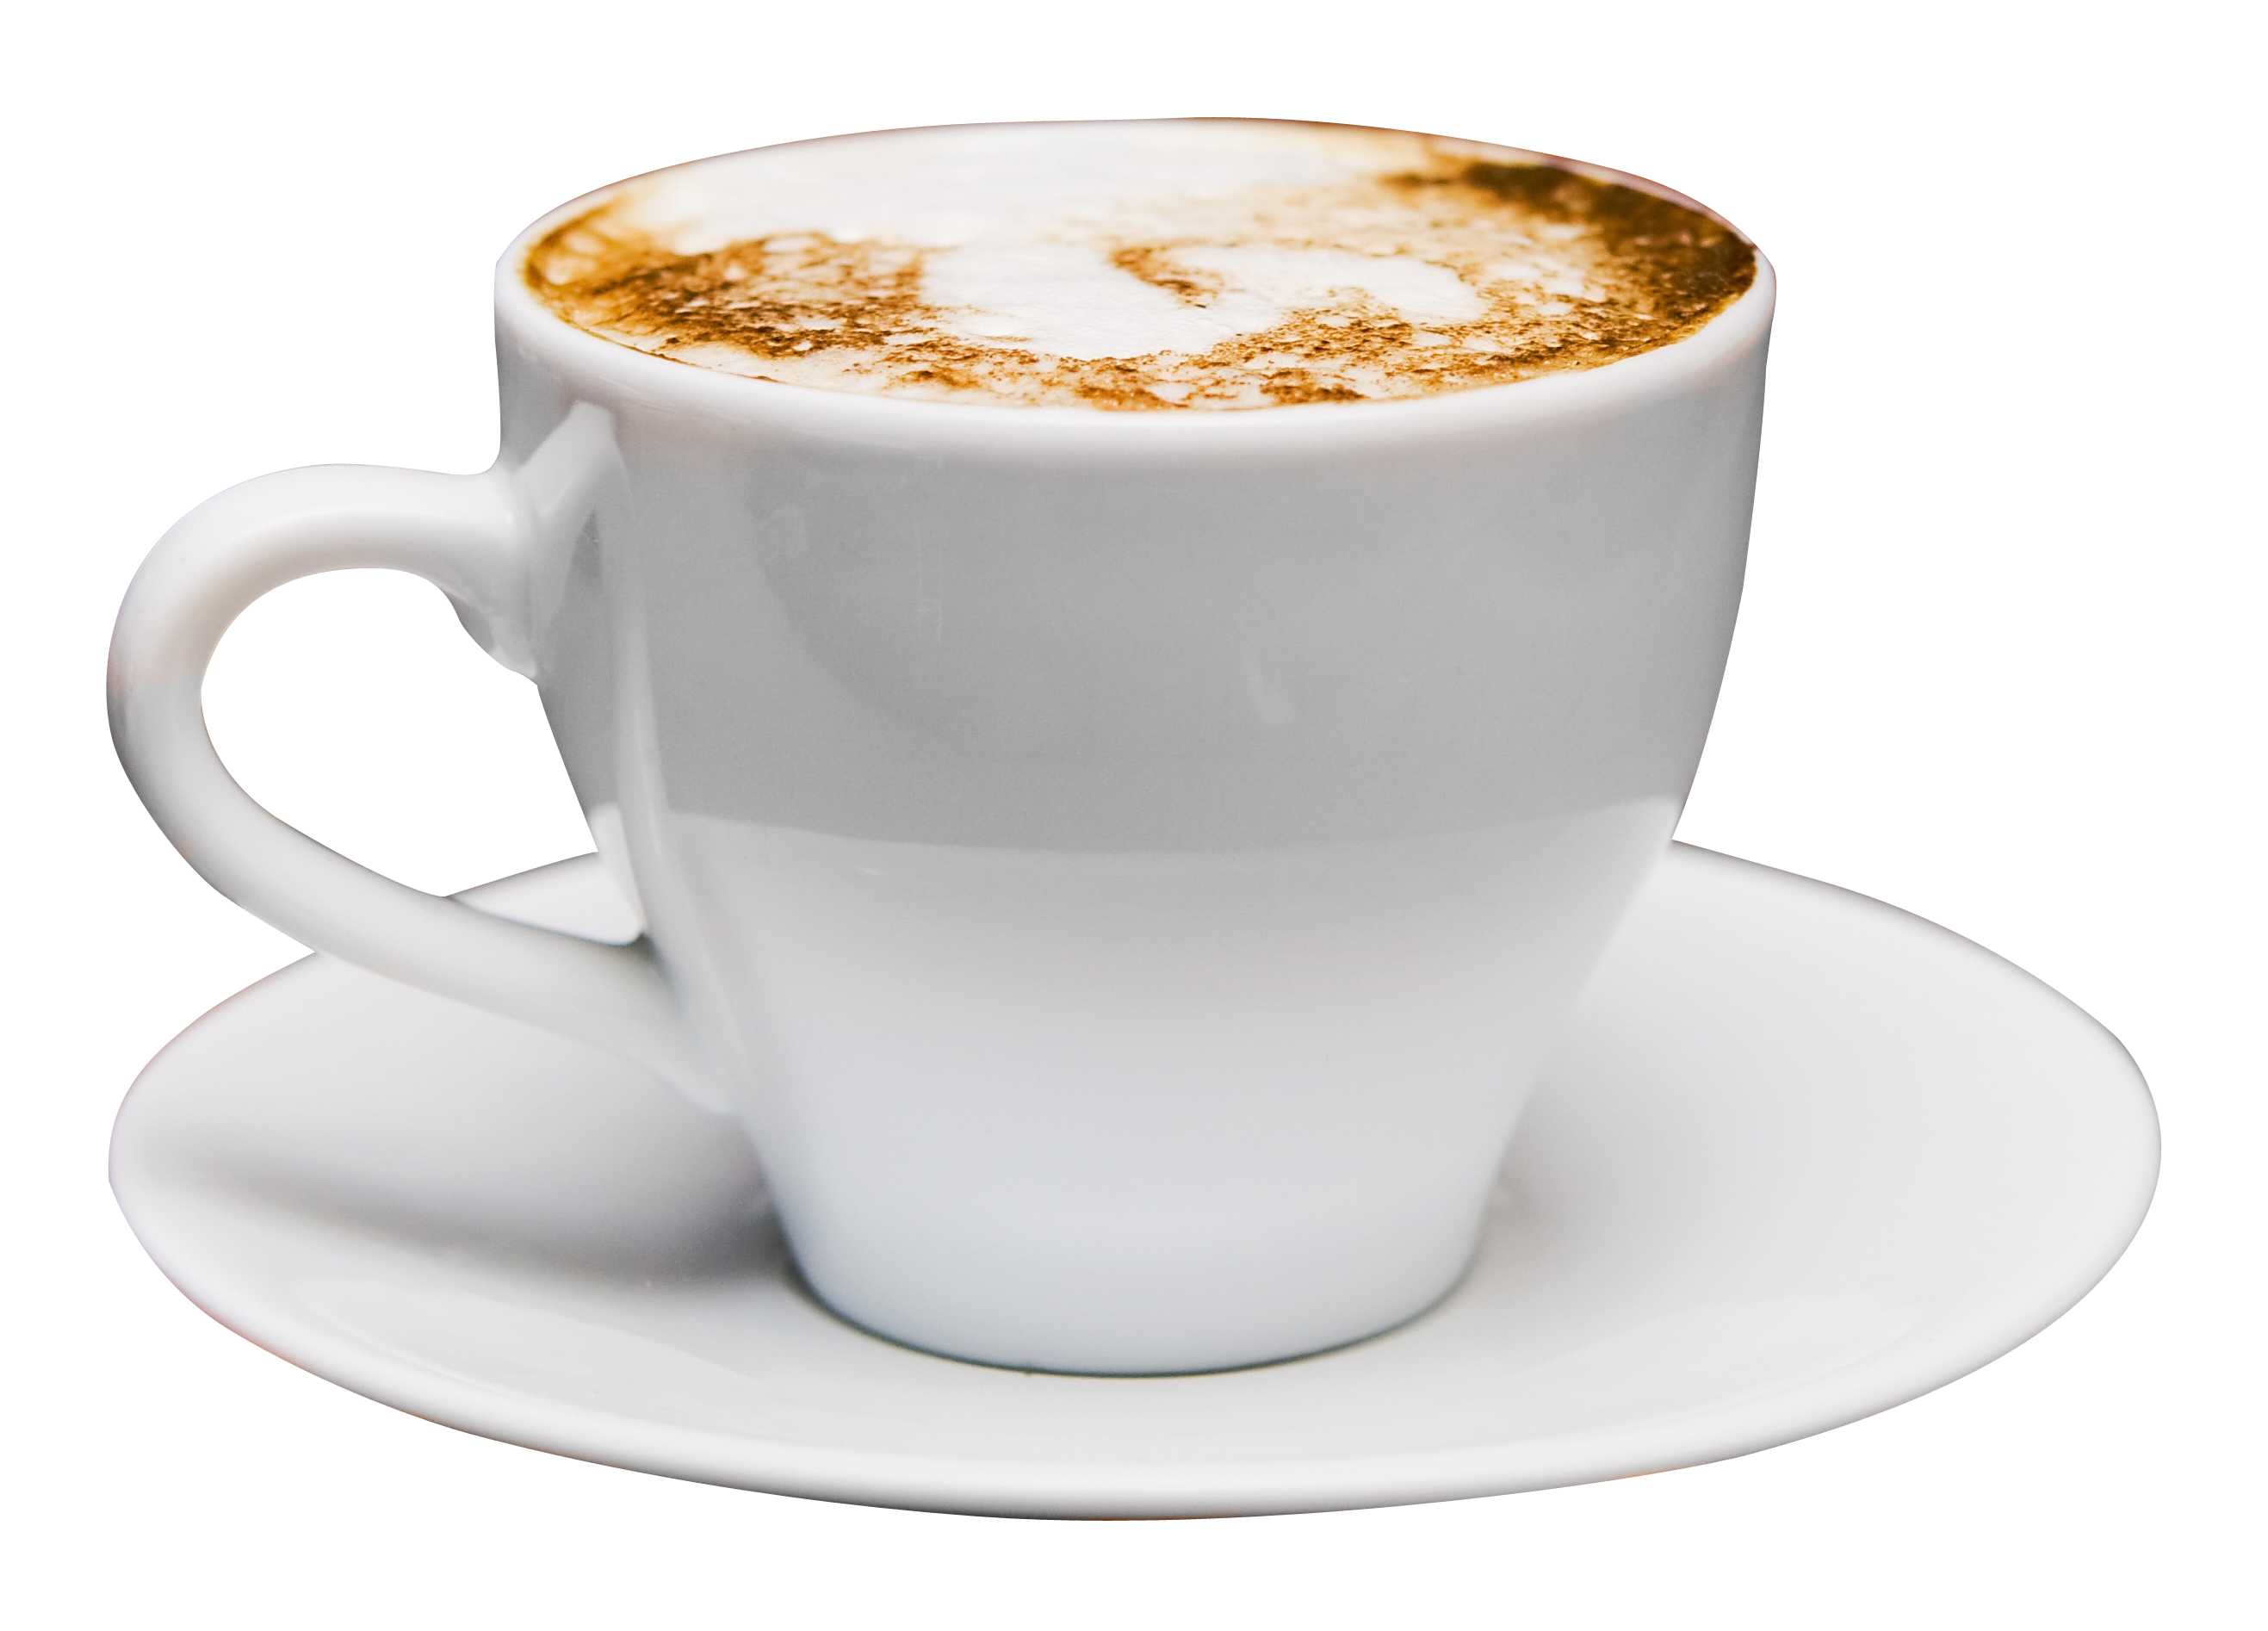 Coffee Cup Png Free Download - Coffee, Transparent background PNG HD thumbnail